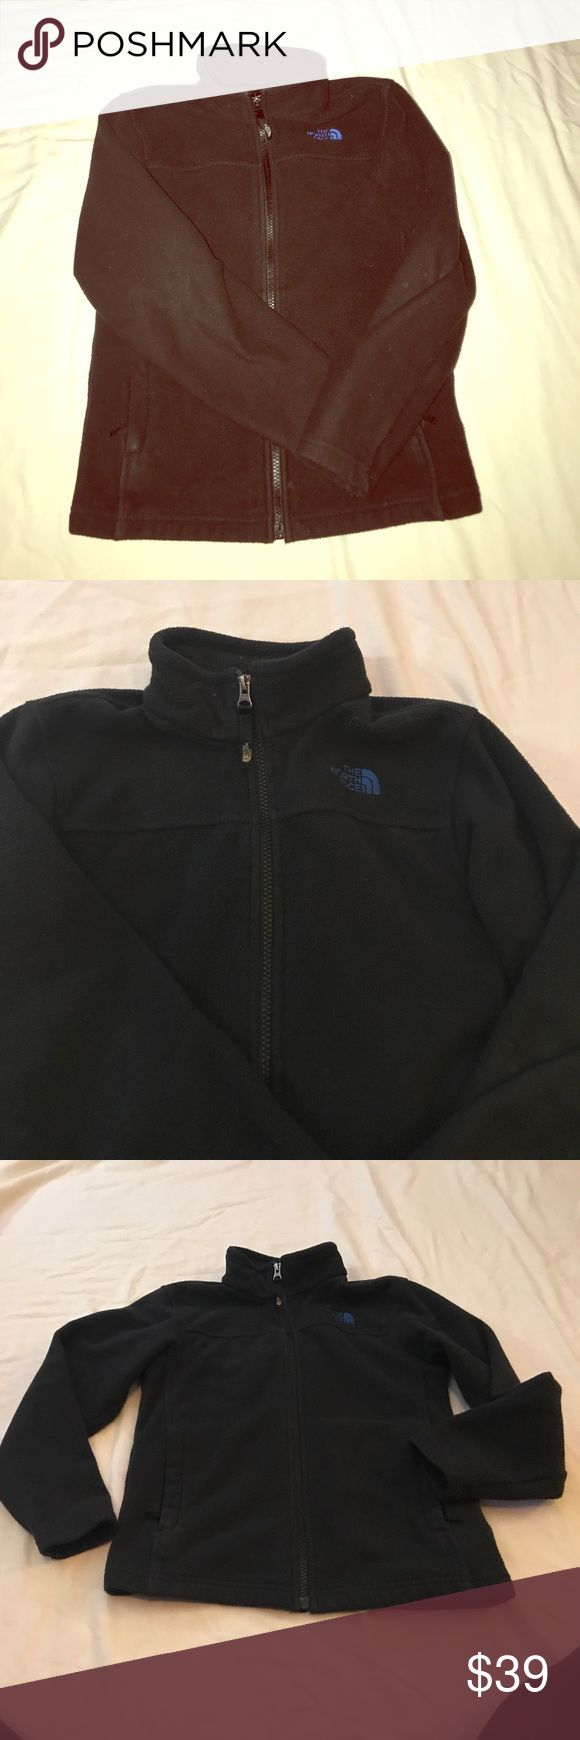 🎉Euc TNF fleece boys m jacket comfy warm 🎉 Great winter mist for your little one TNF black fleece coat purchased from north face outlet in castle rock Co in great condition hardly signs of wear offers welcome 😄 North Face Jackets & Coats